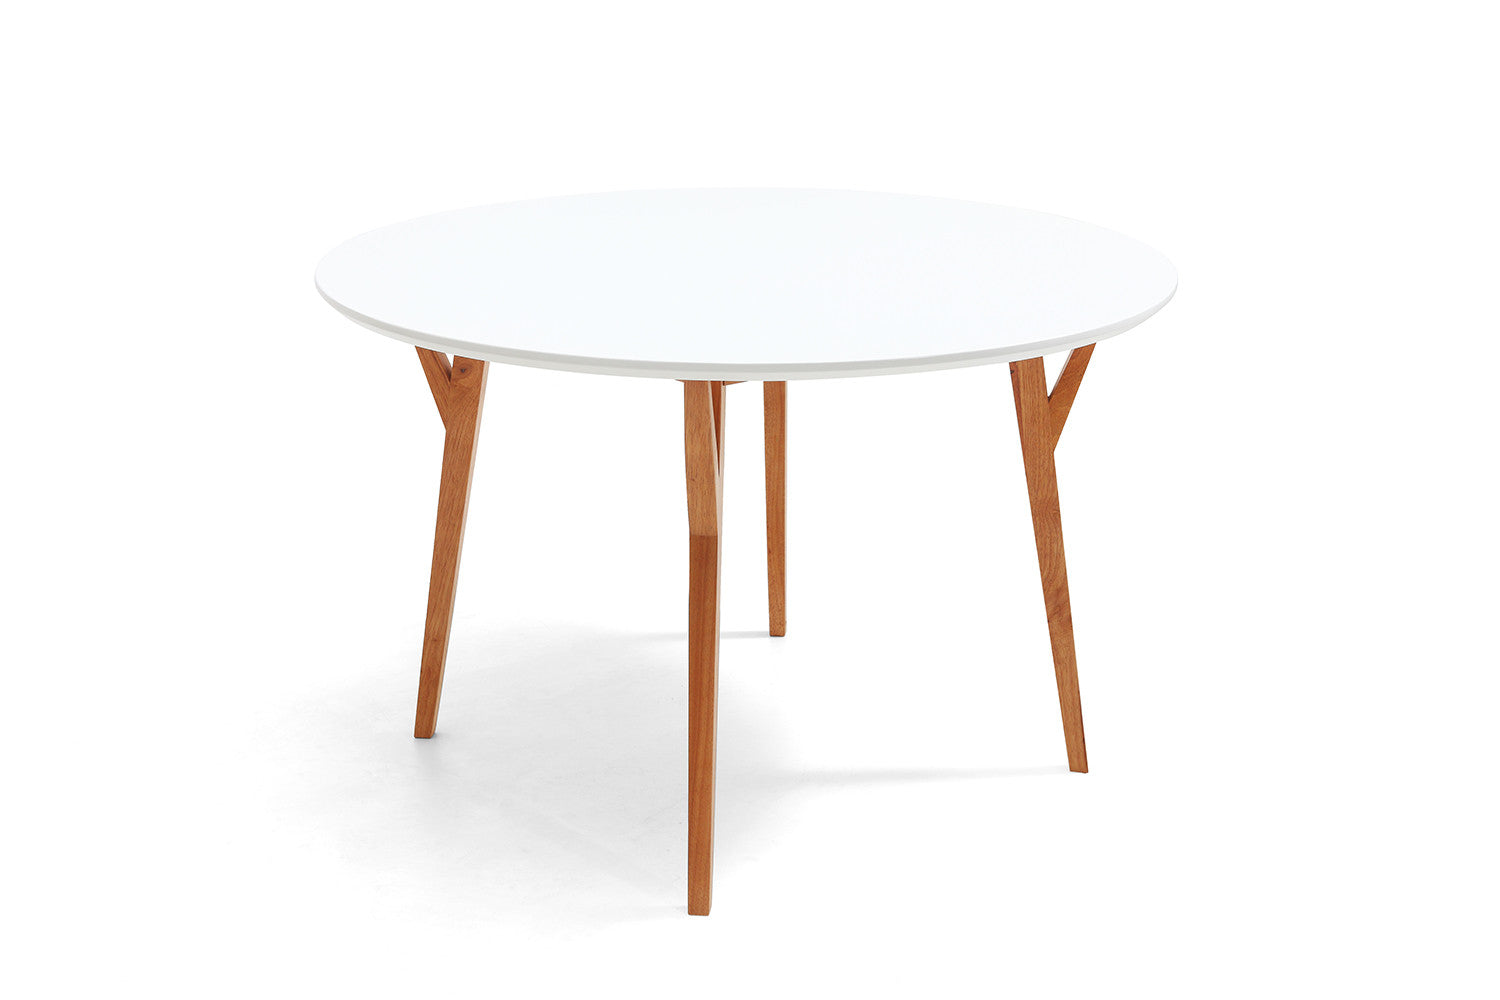 Table de salle manger ronde design scandinave moesa for Table salle a manger design